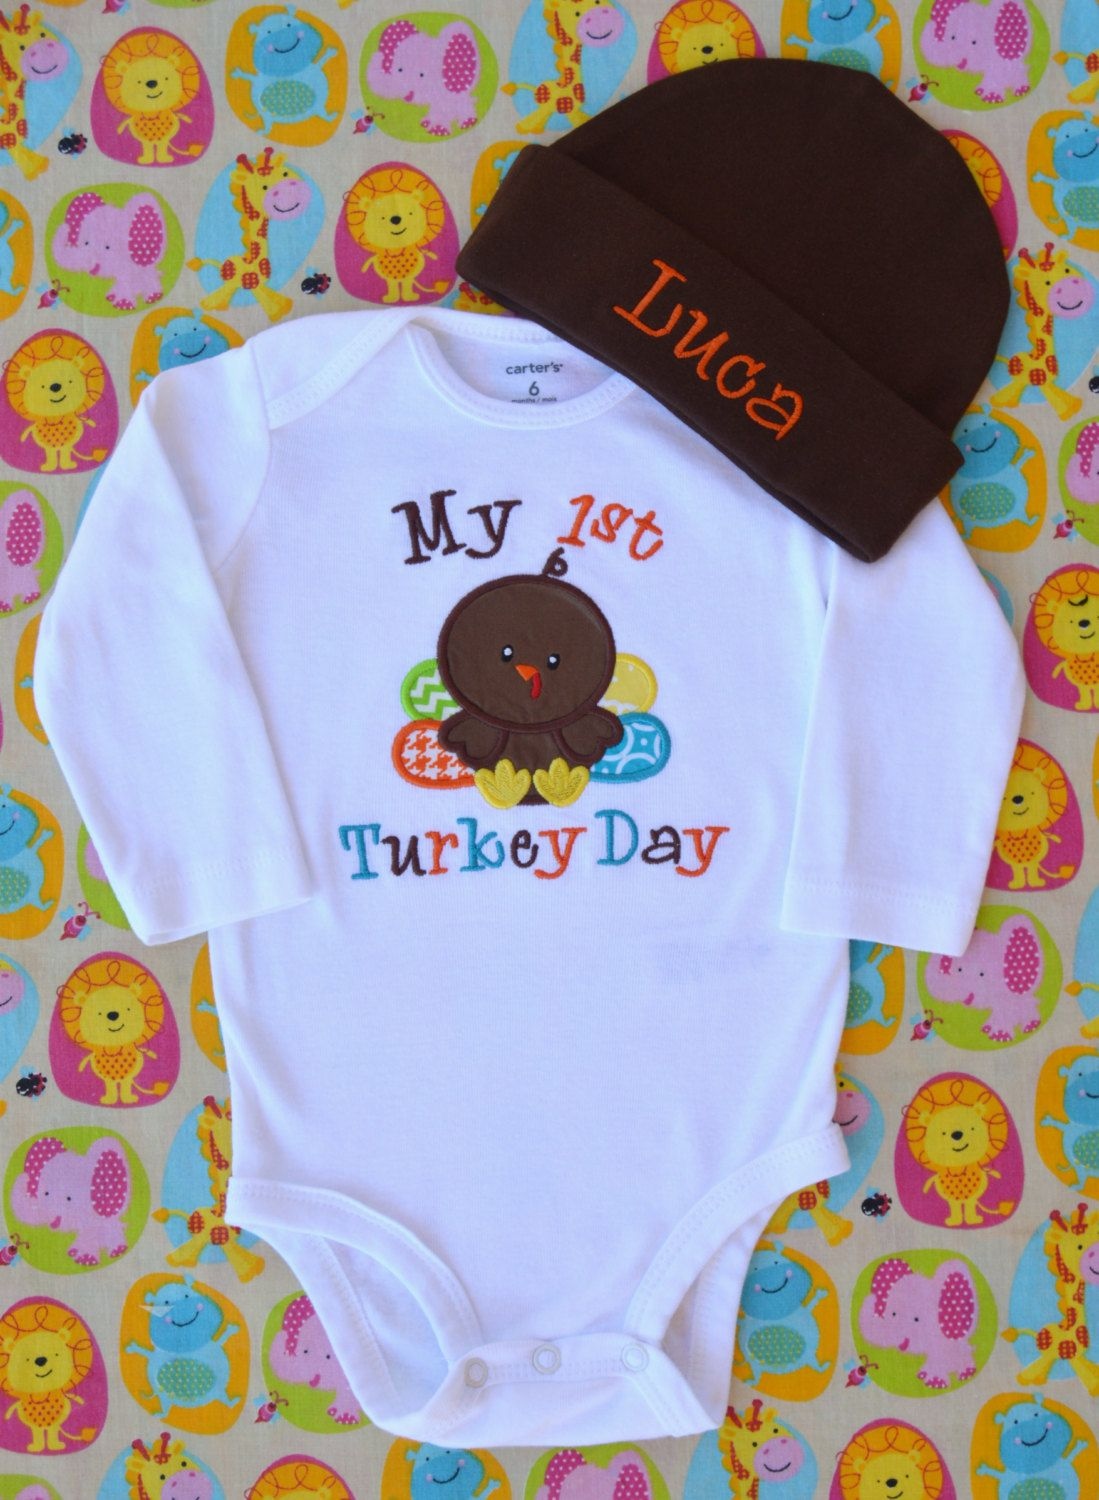 d4d0cd9e1 My First Thanksgiving Outfit Baby Boy Thanksgiving Outfit Baby Boy Clothes  My First Turkey Day My First Thanksgiving Bodysuit / Gown by juniegrace on  Etsy